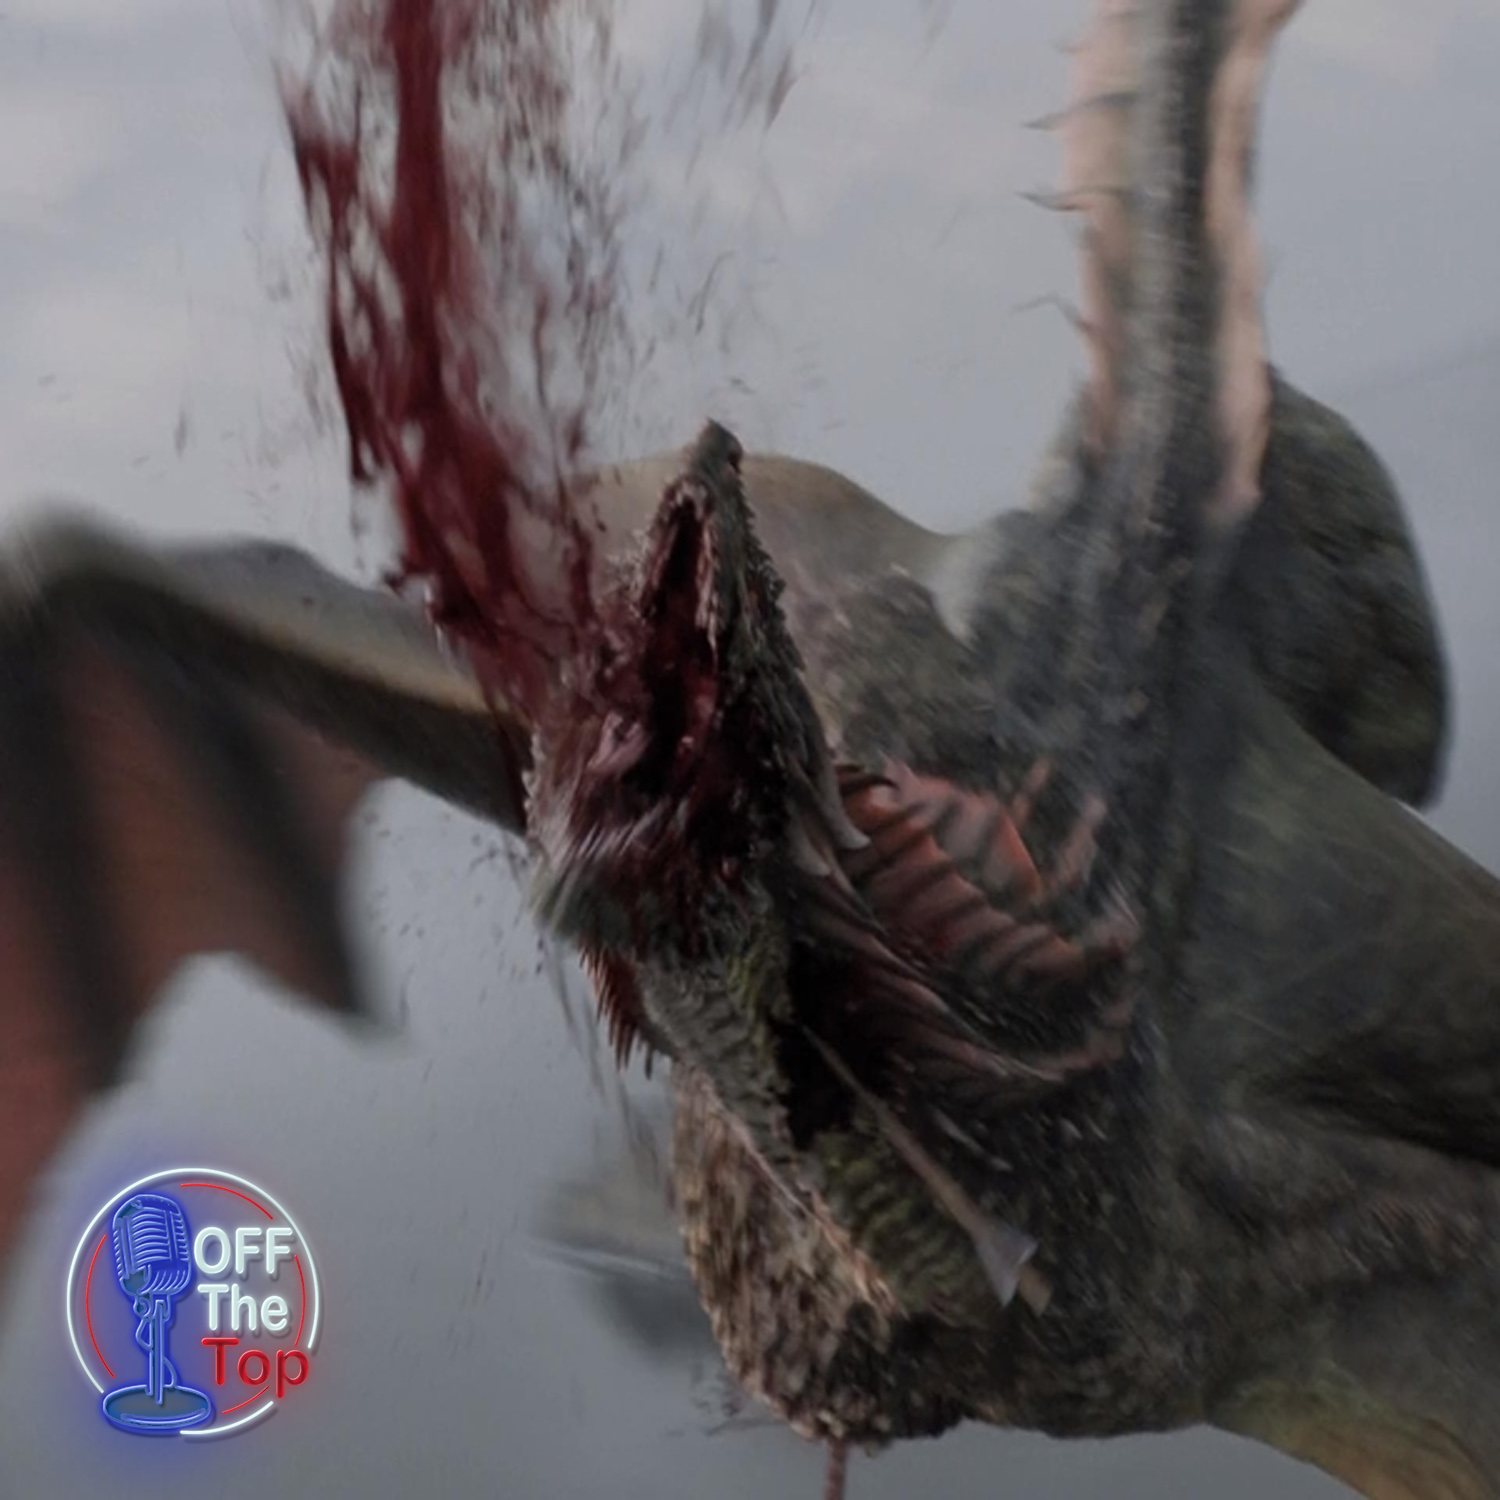 """Game Of Thrones Season 8 Episode 4 """"The last of the Starks"""" Breakdown & Review"""